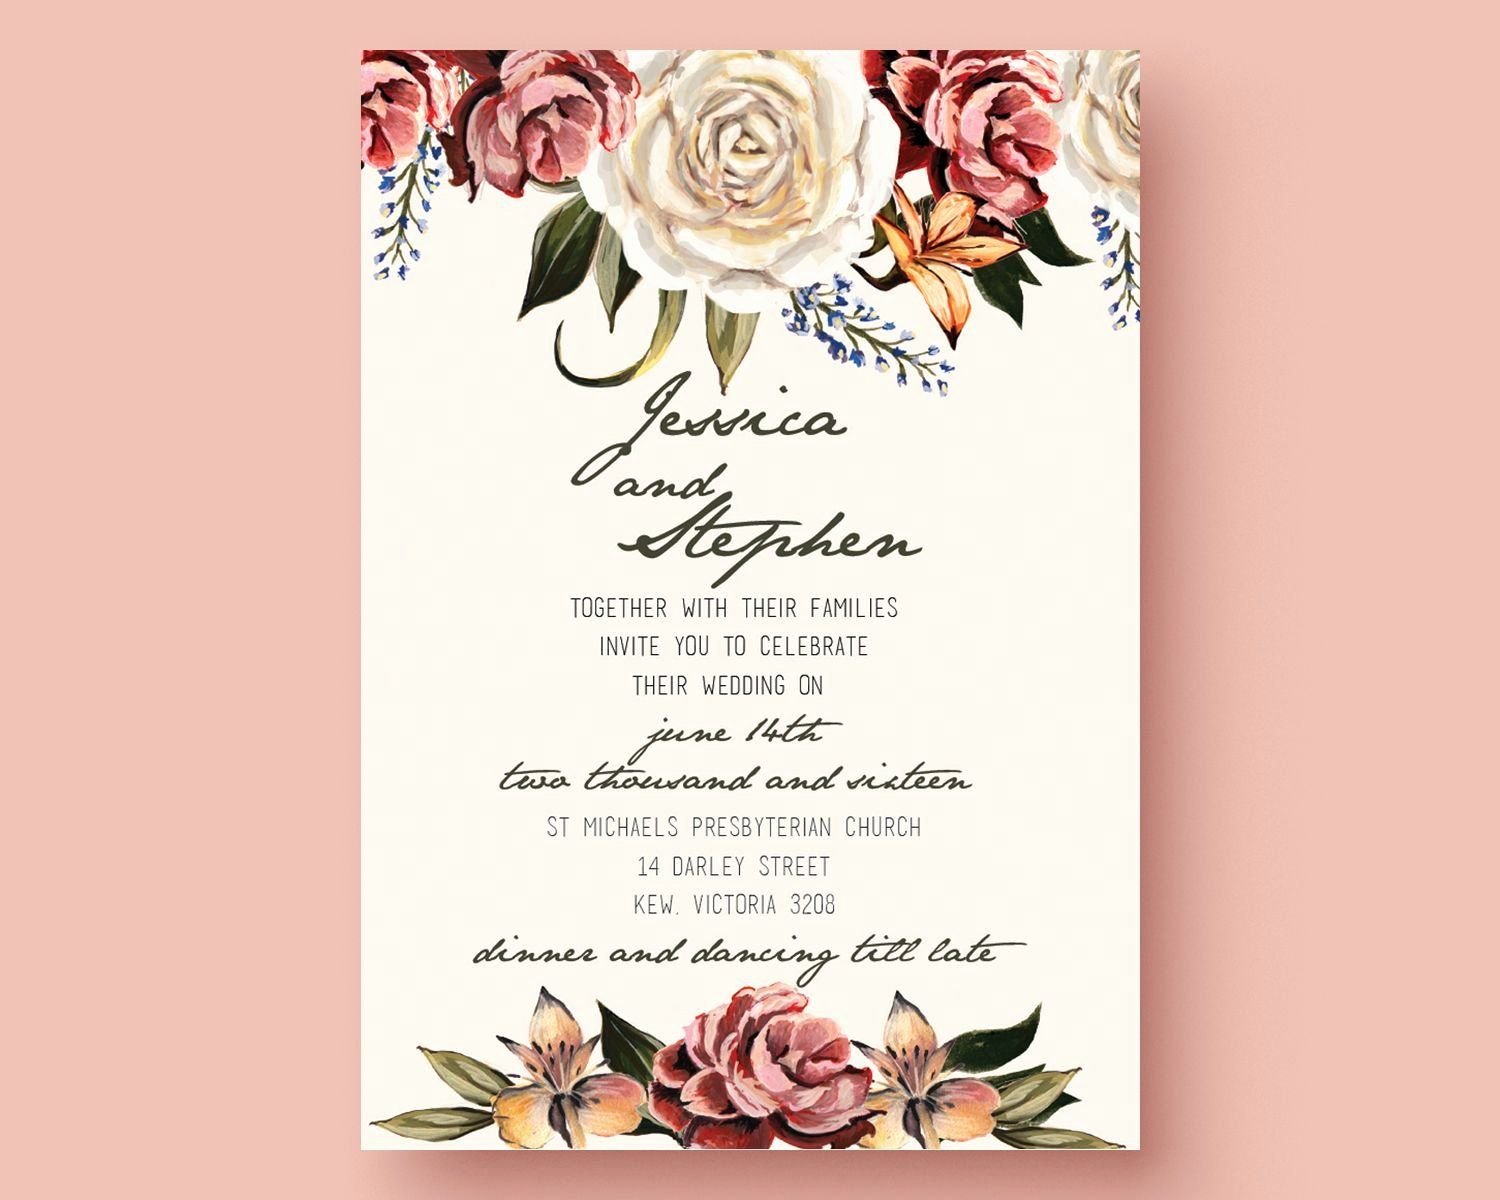 Wedding Invitation Template Free Download Luxury Get the